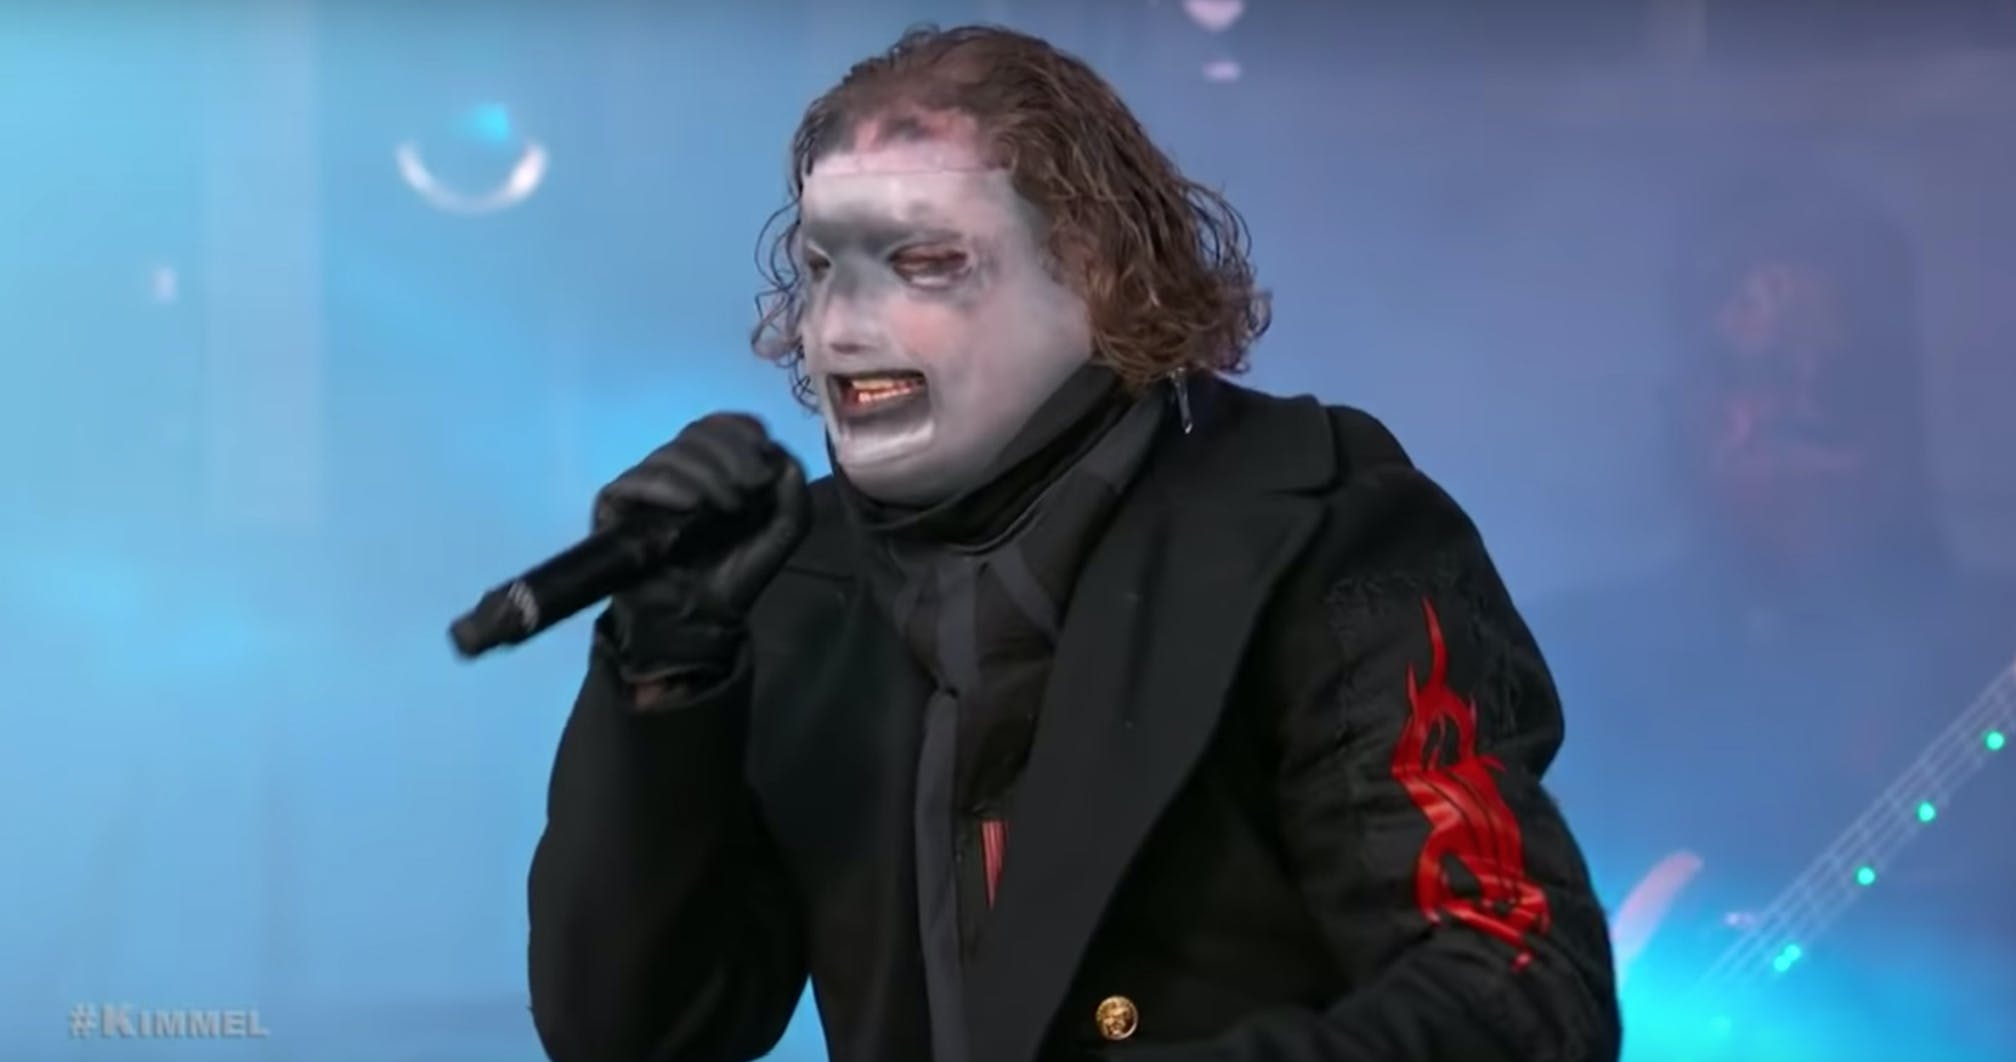 Watch Slipknot Perform Unsainted And All Out Life Live For The First Time